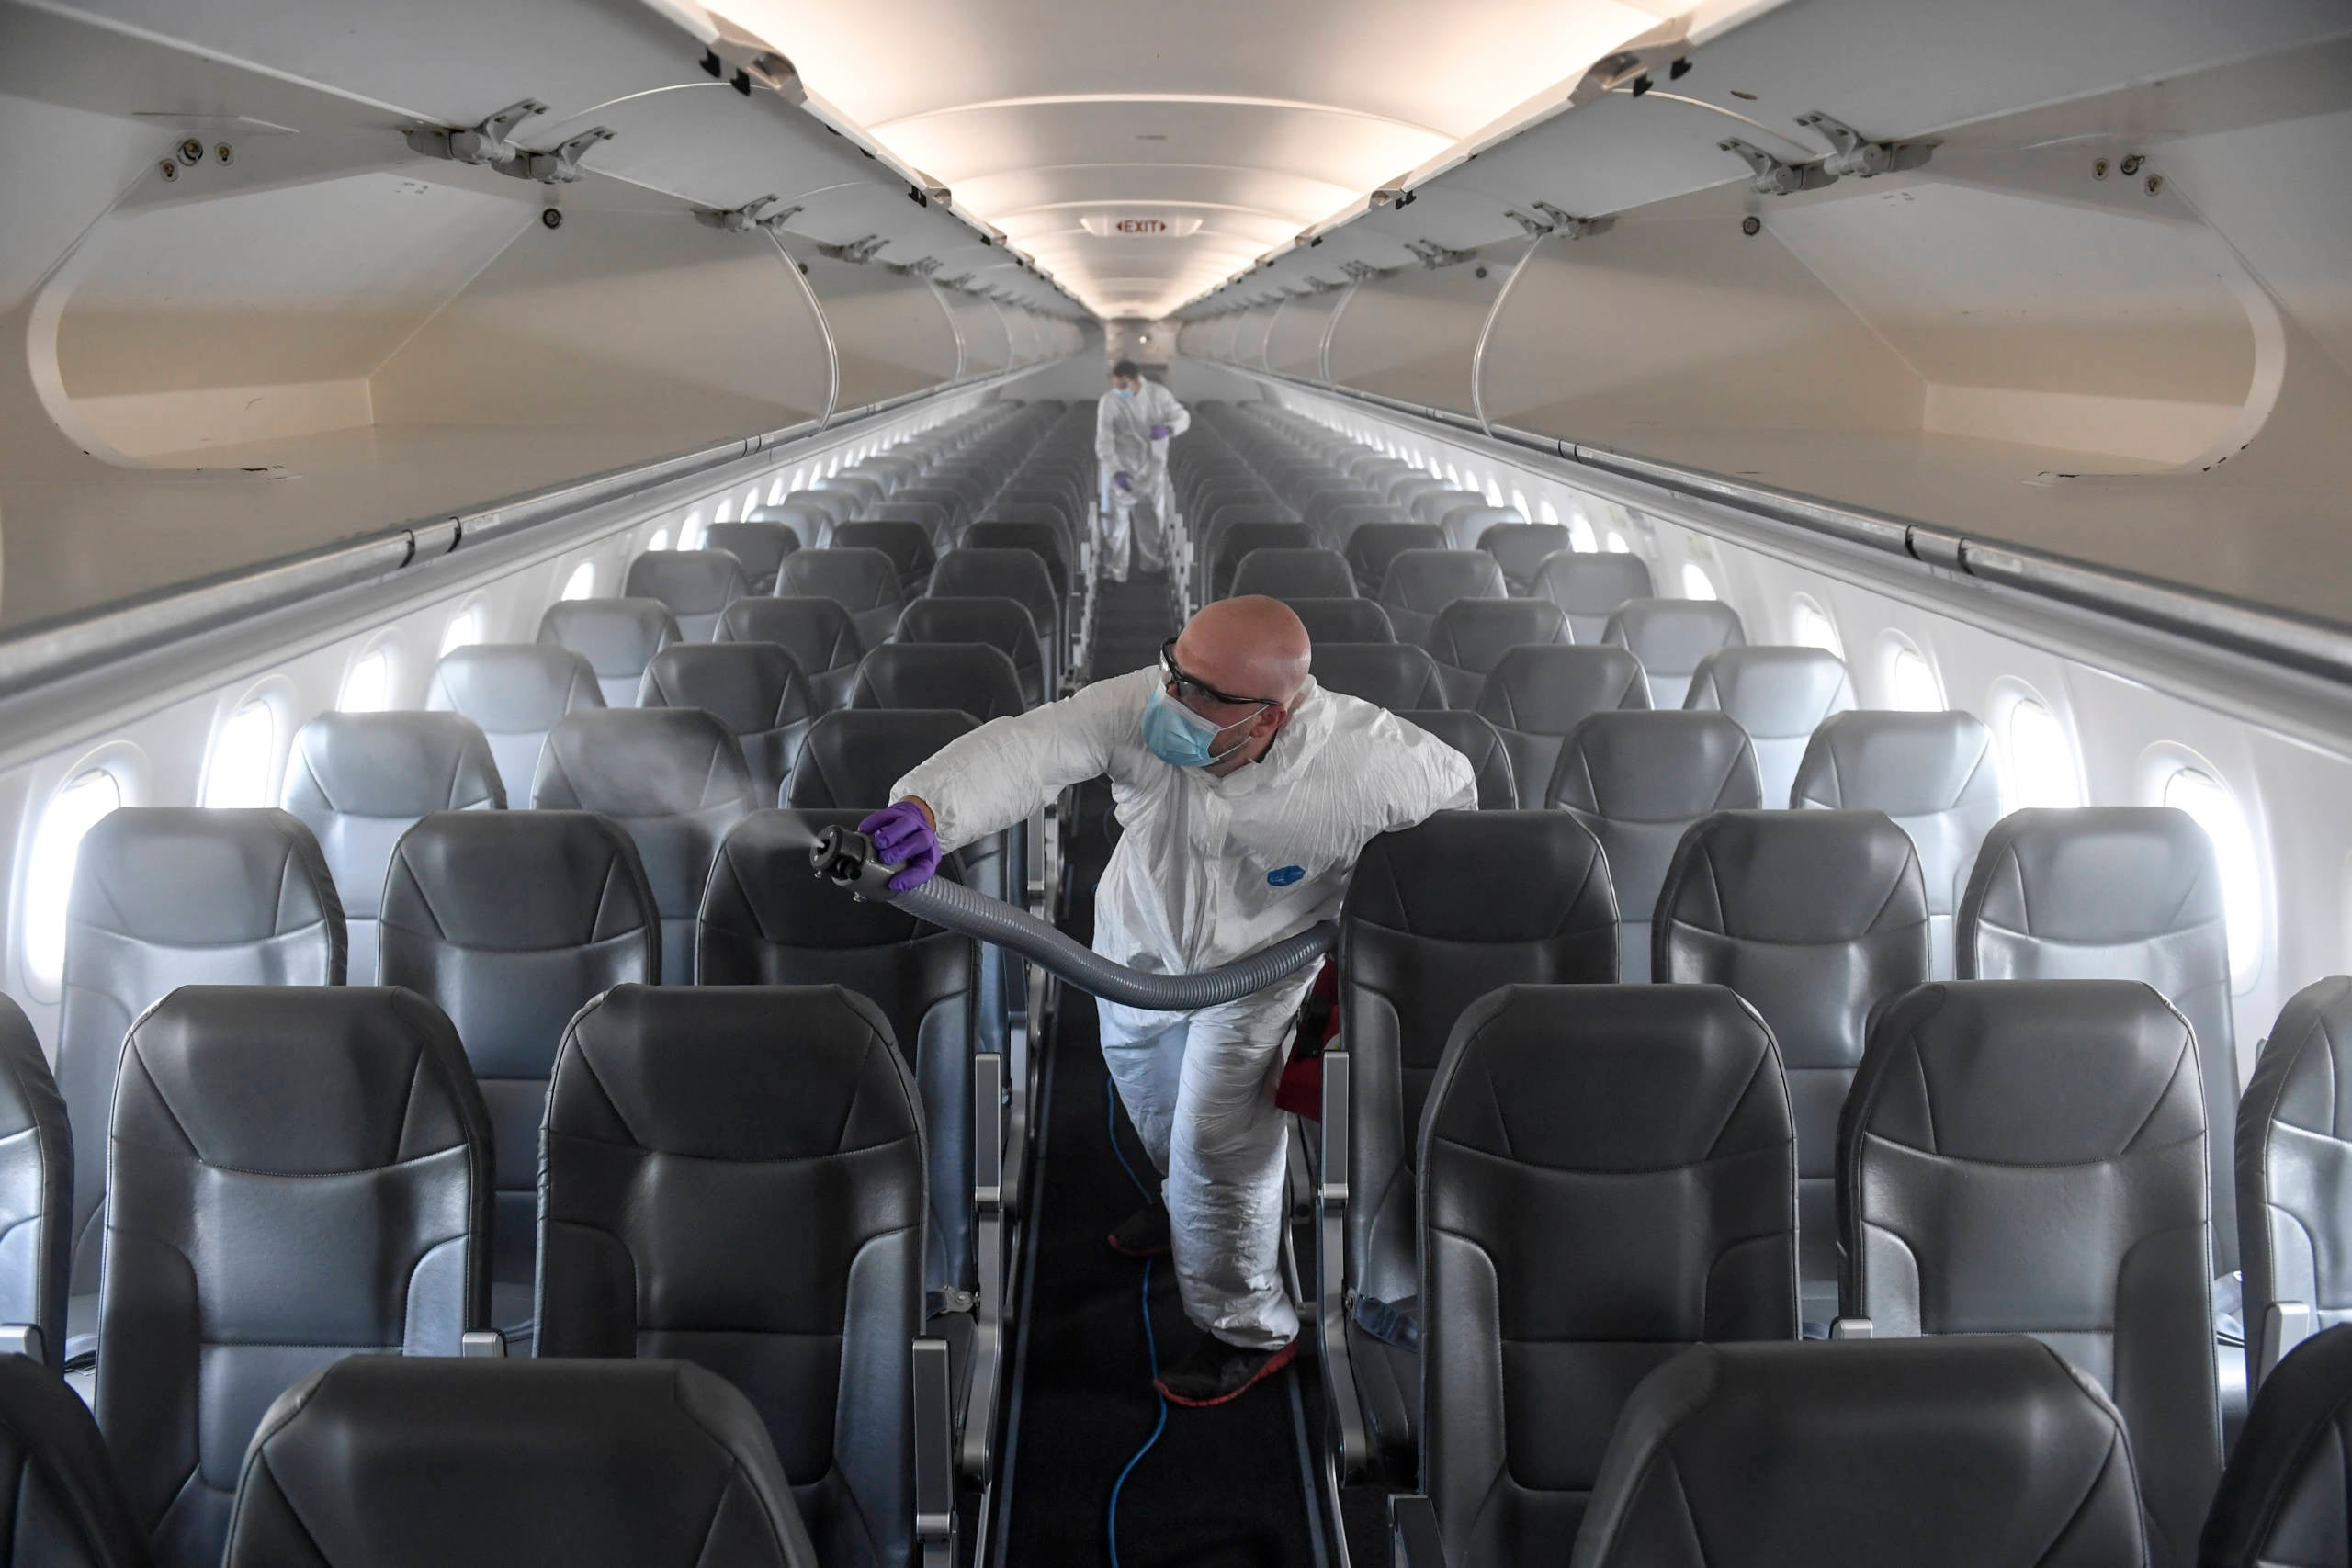 What's it like to fly during a pandemic? We compared 4 different US airlines